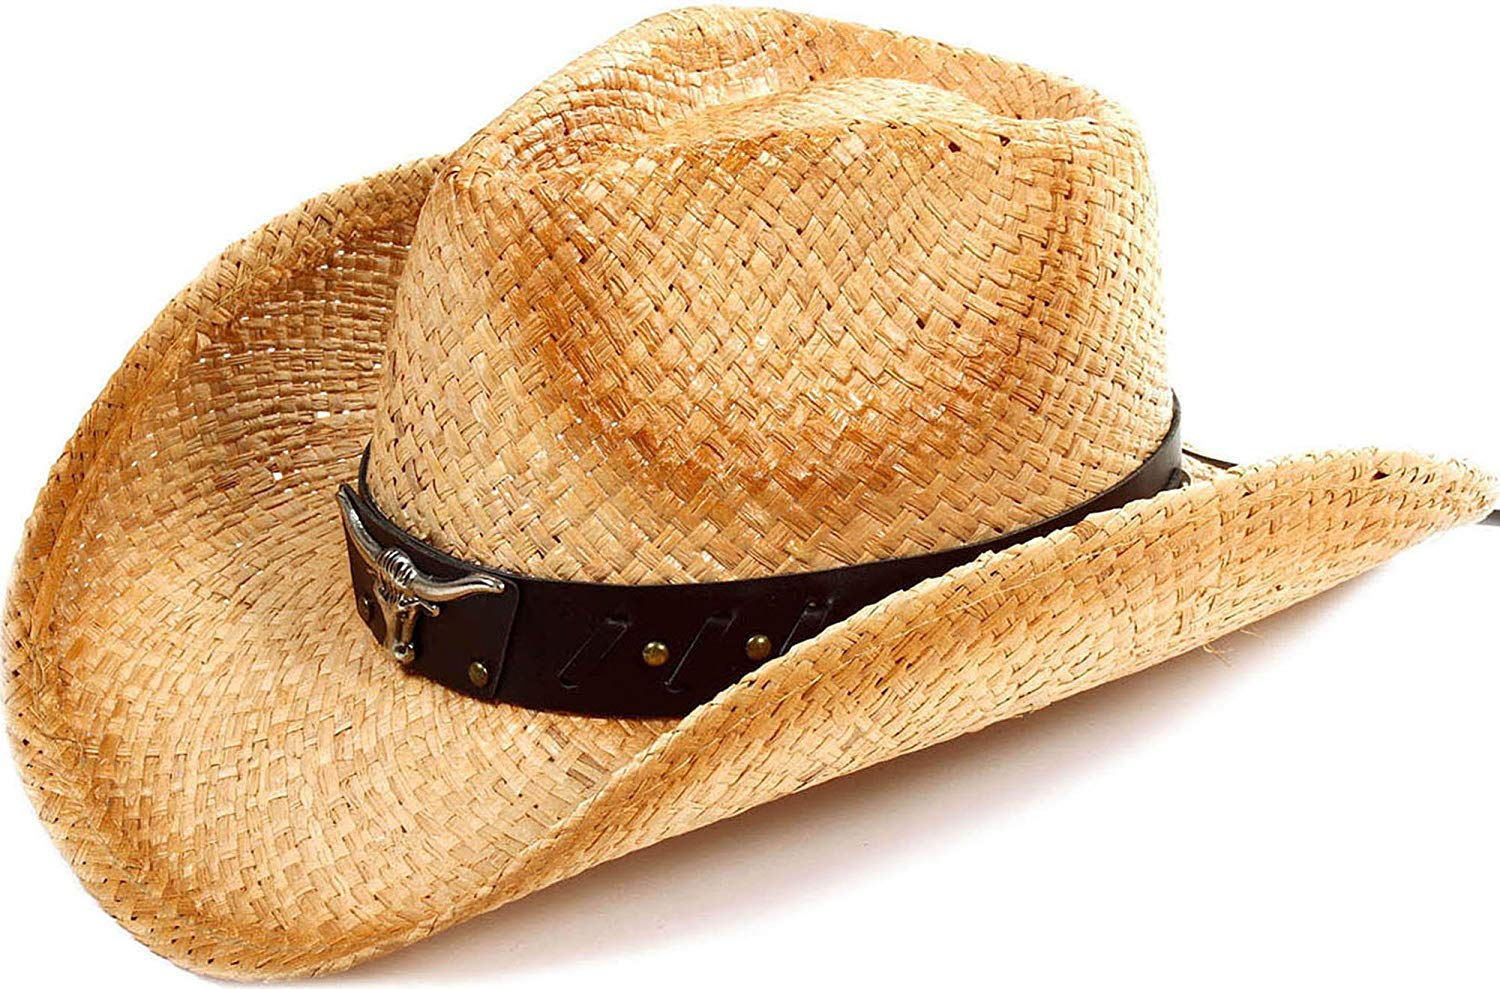 601a7606cce Get Quotations · Toppers Kids Boys Girls Summer Sun Hat Wide Brim UV  Protection Straw Cowboy Hat